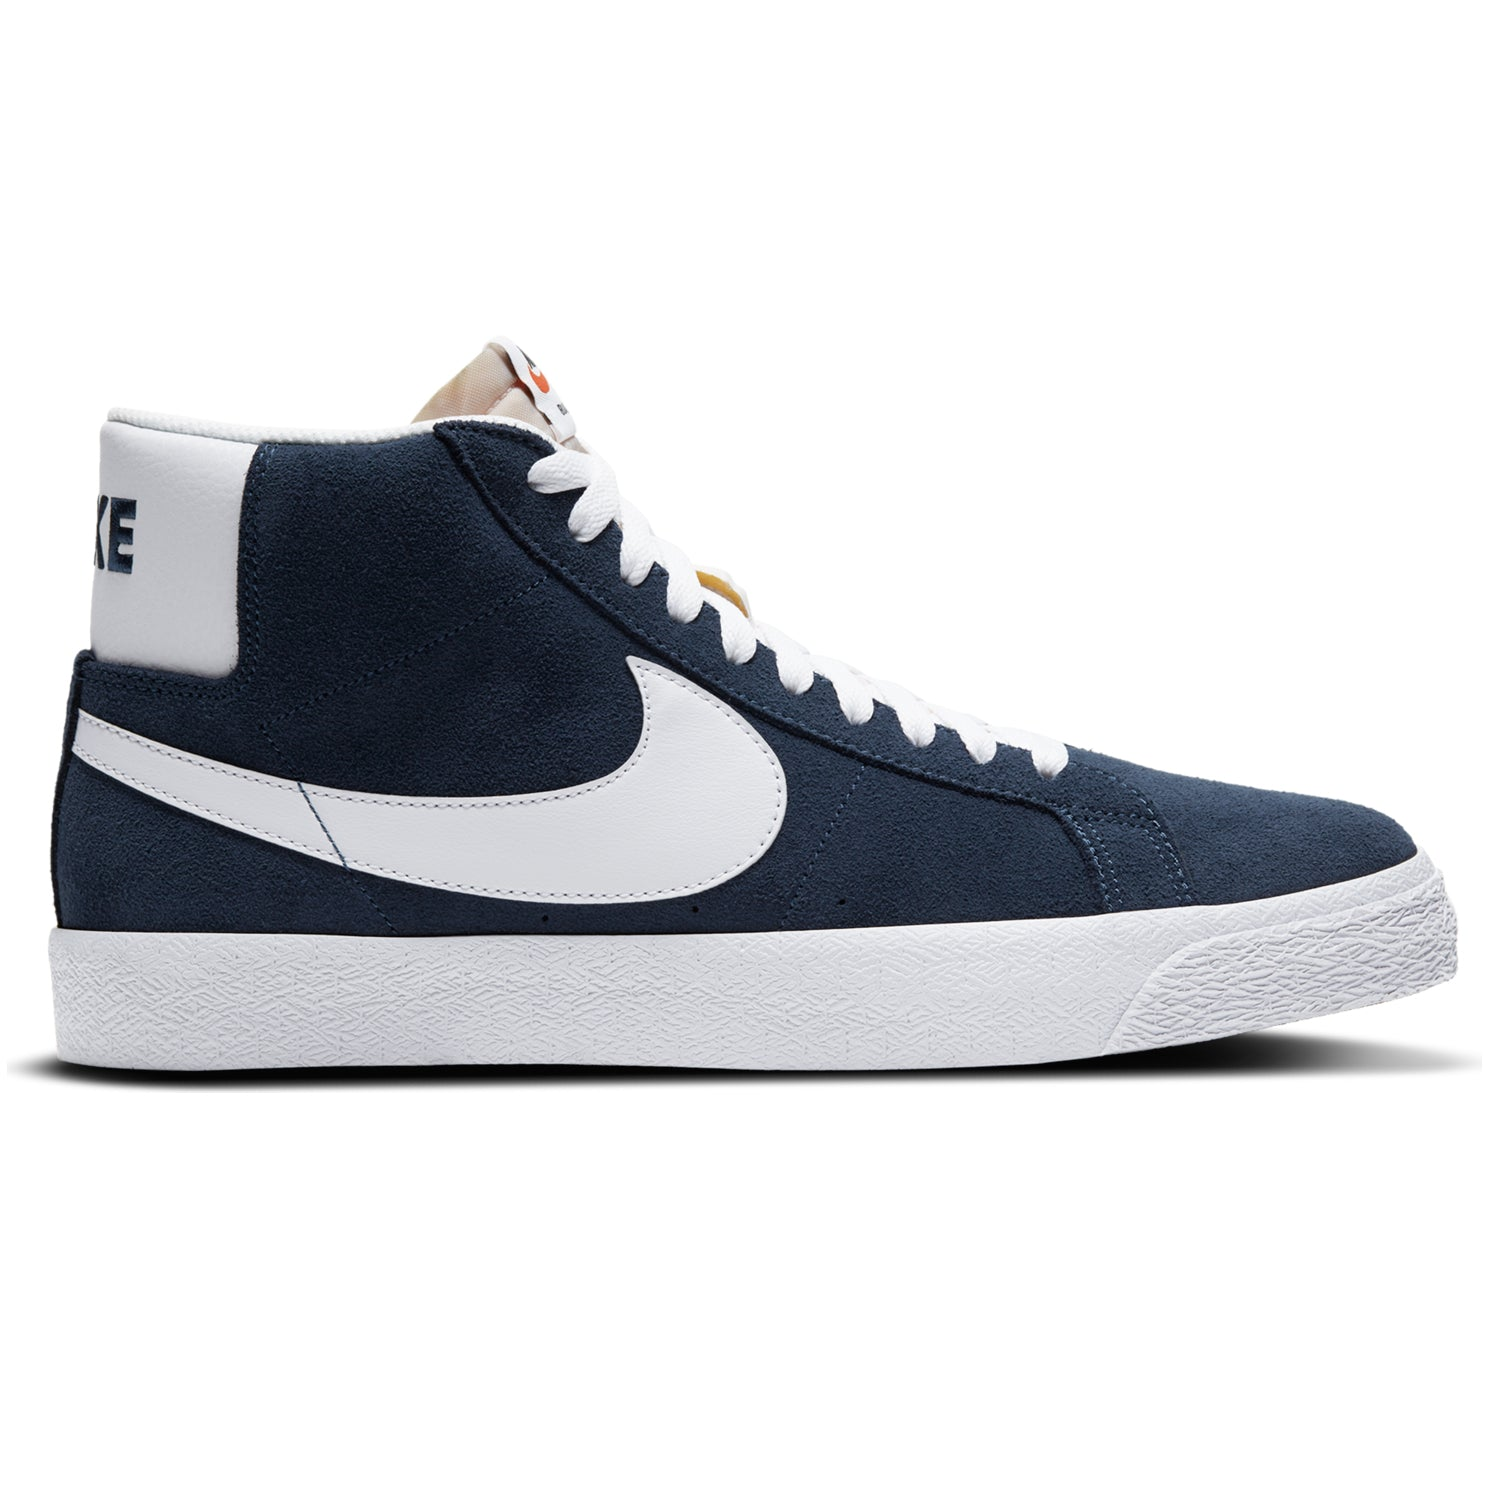 Nike SB Zoom Blazer Mid Navy/Black/University Red/White